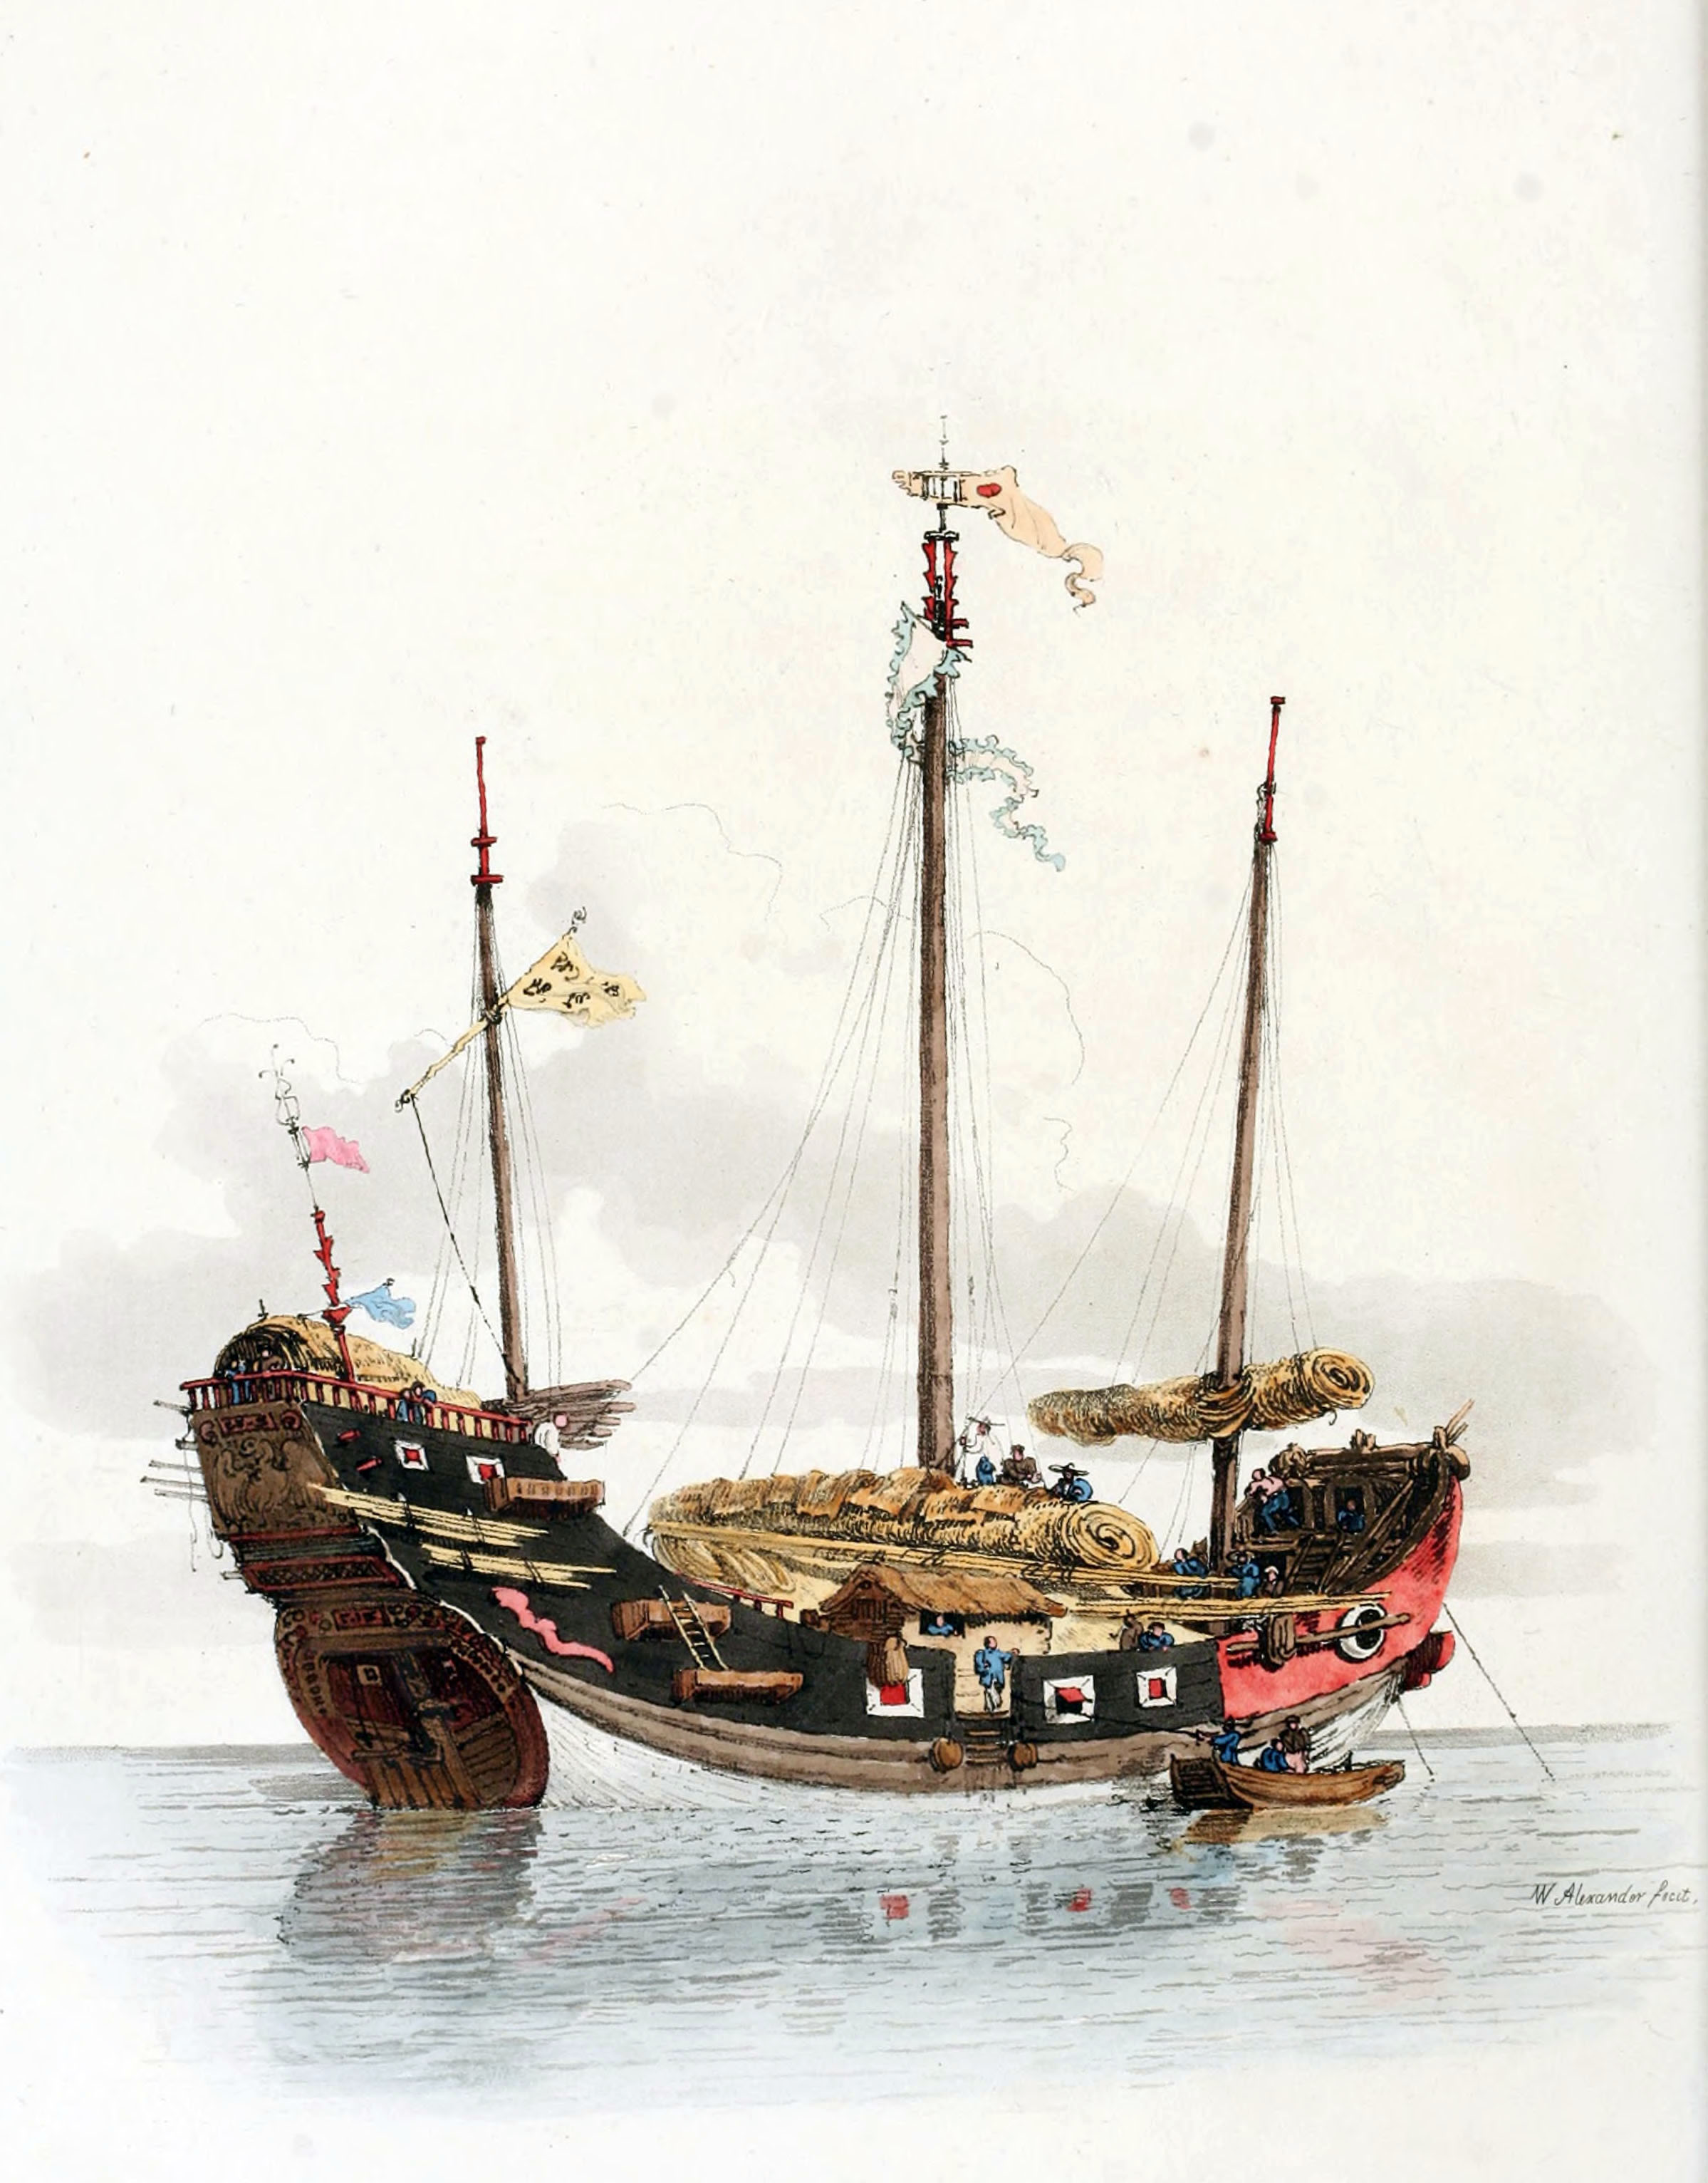 File:PORTRAIT OF A TRADING SHIP.jpg